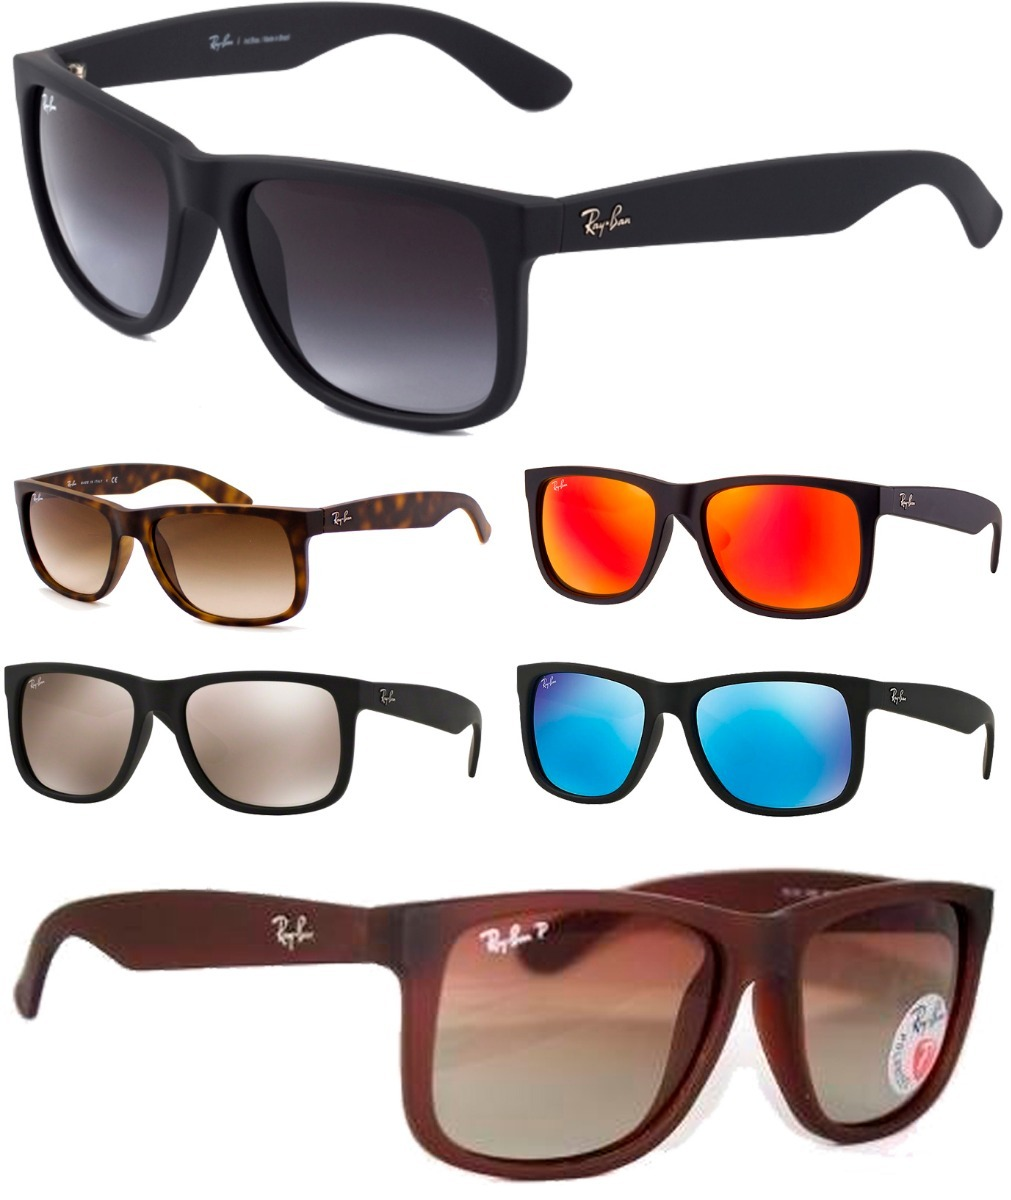 ... good óculos sol ray ban rb4165 justin original masculino feminino.  carregando zoom. d4f40 51e11 997add9c7a